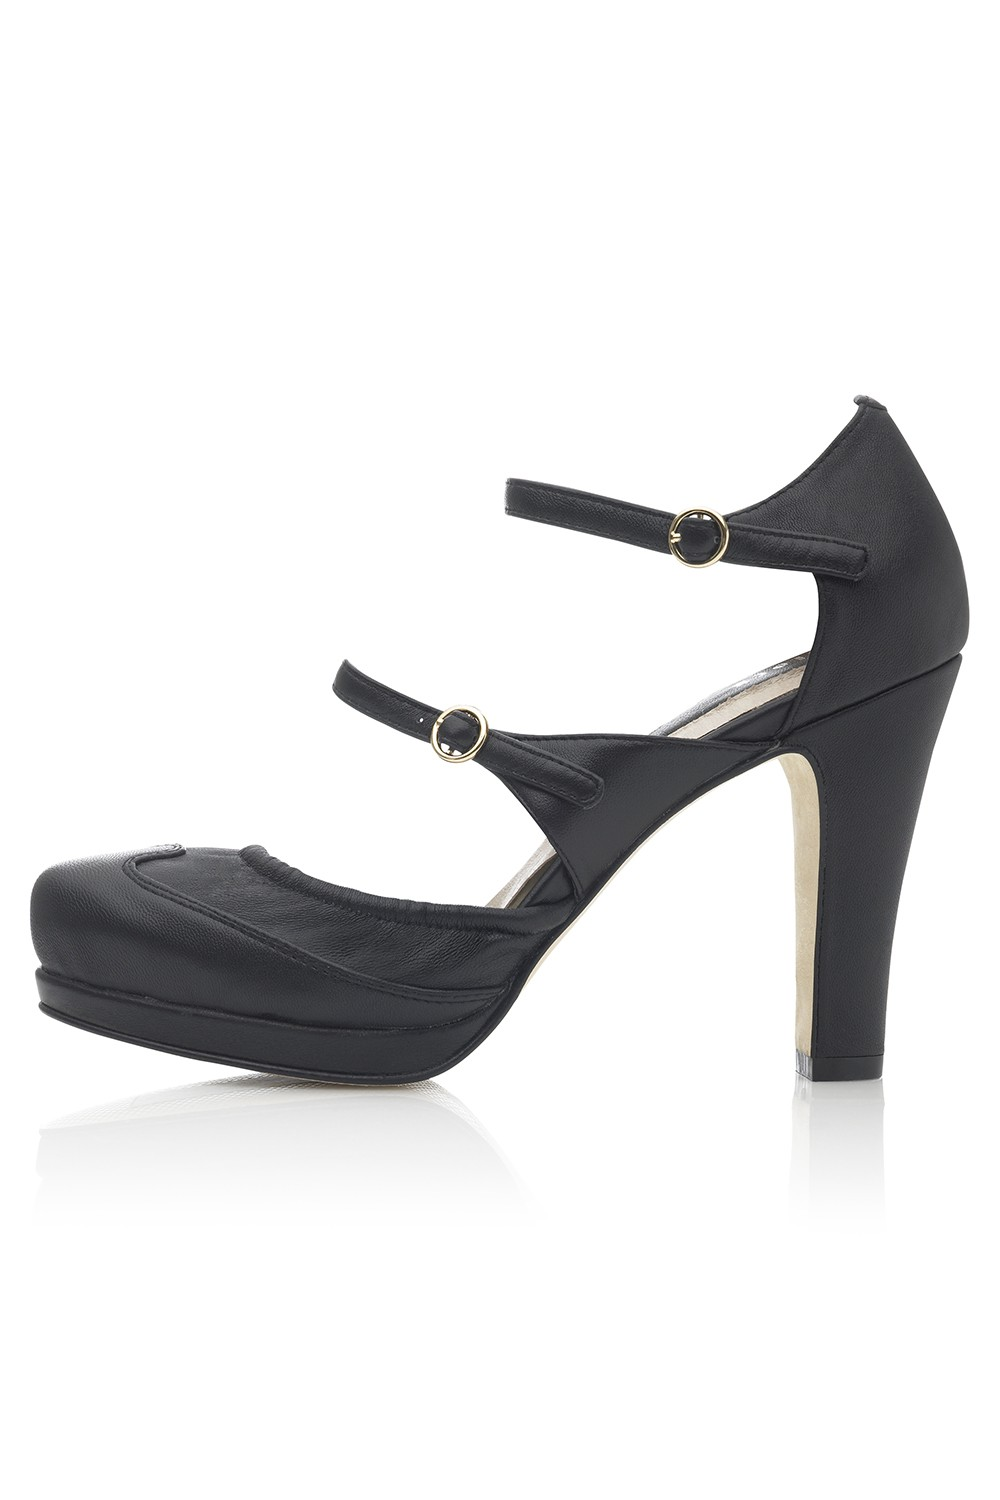 Arricciata Zia - Uno Womens Fashion Shoes